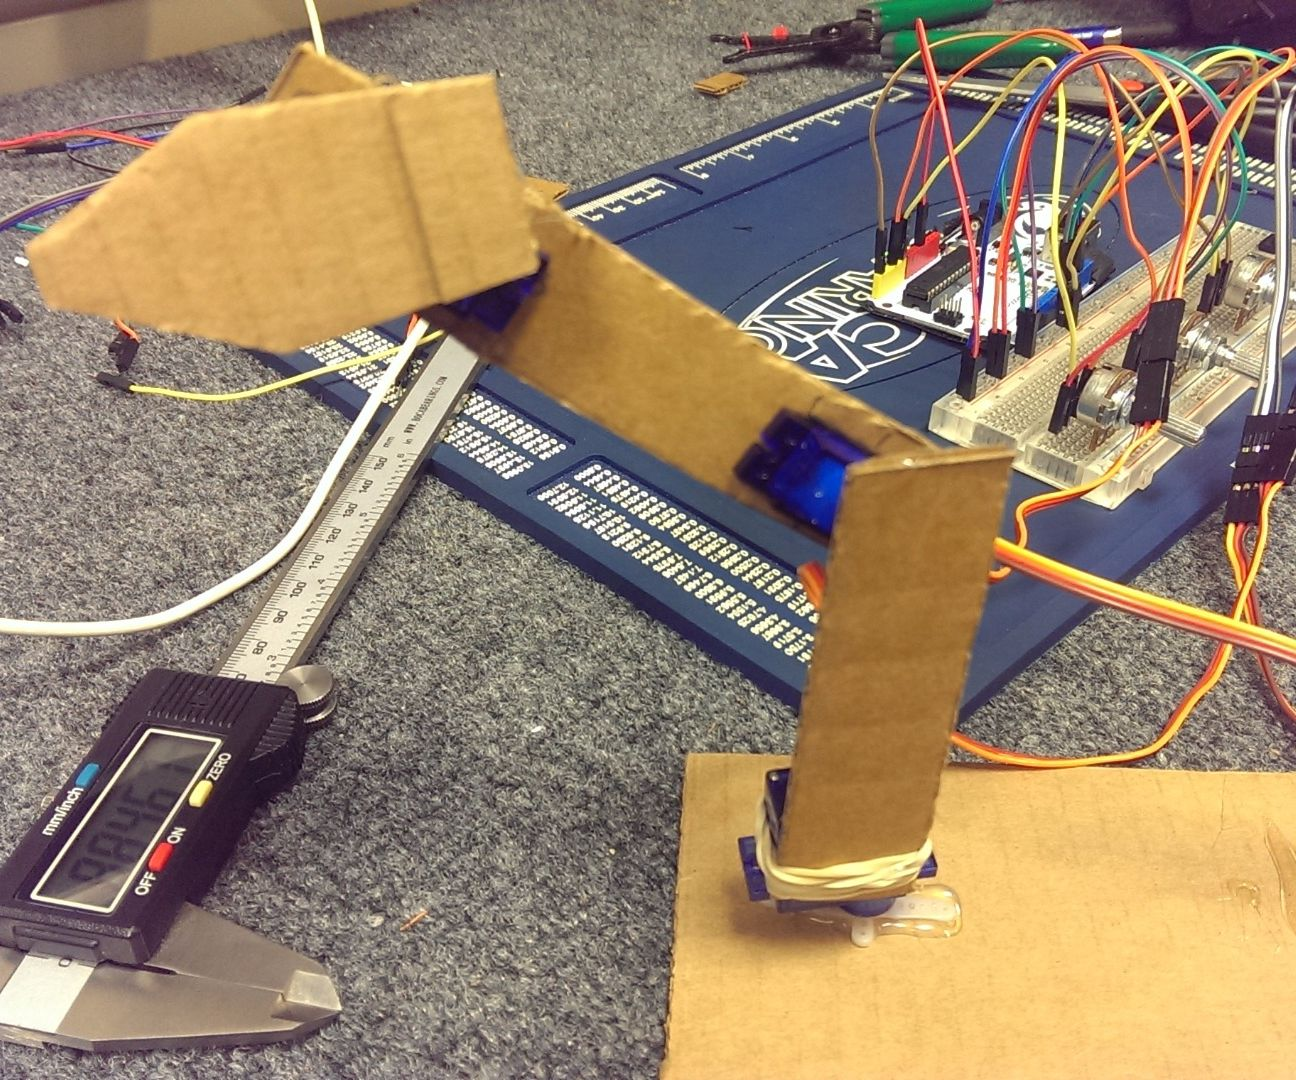 Simple Robotic Arm Out of Cardboard Pieces